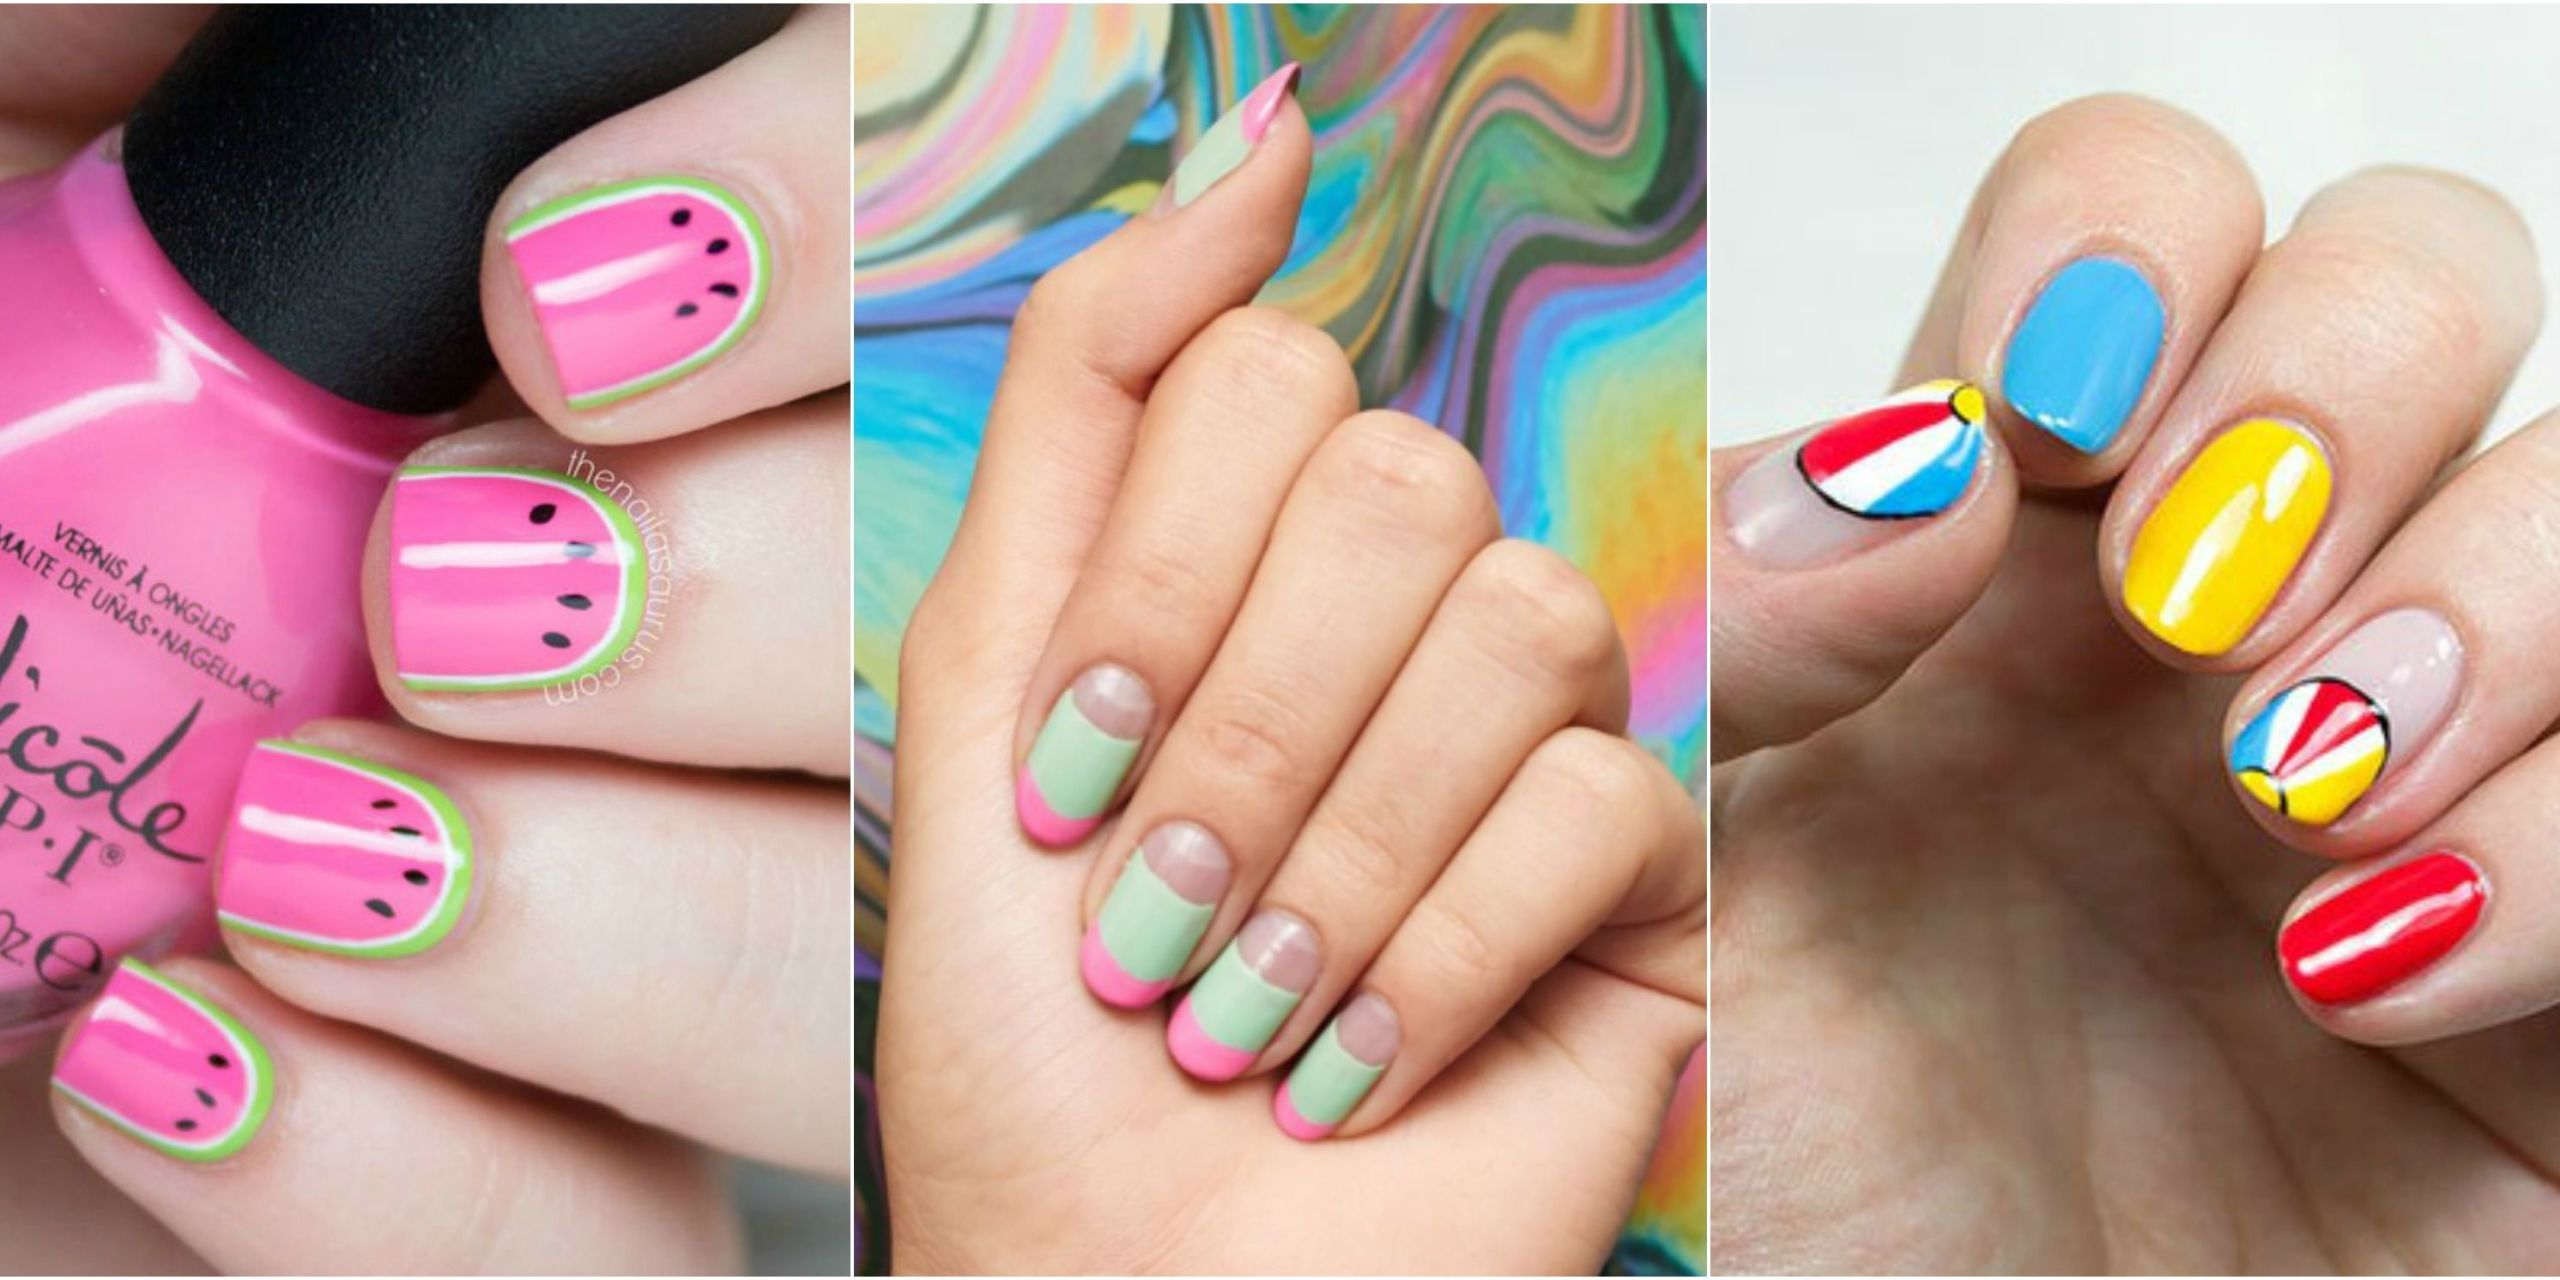 Your nails are ready to play in the sparkling sun. With these easy-to-replicate manicures nail are has never looked so cool for the summer. & 30 Summer Nail Designs for 2017 - Best Nail Polish Art Ideas for Summer